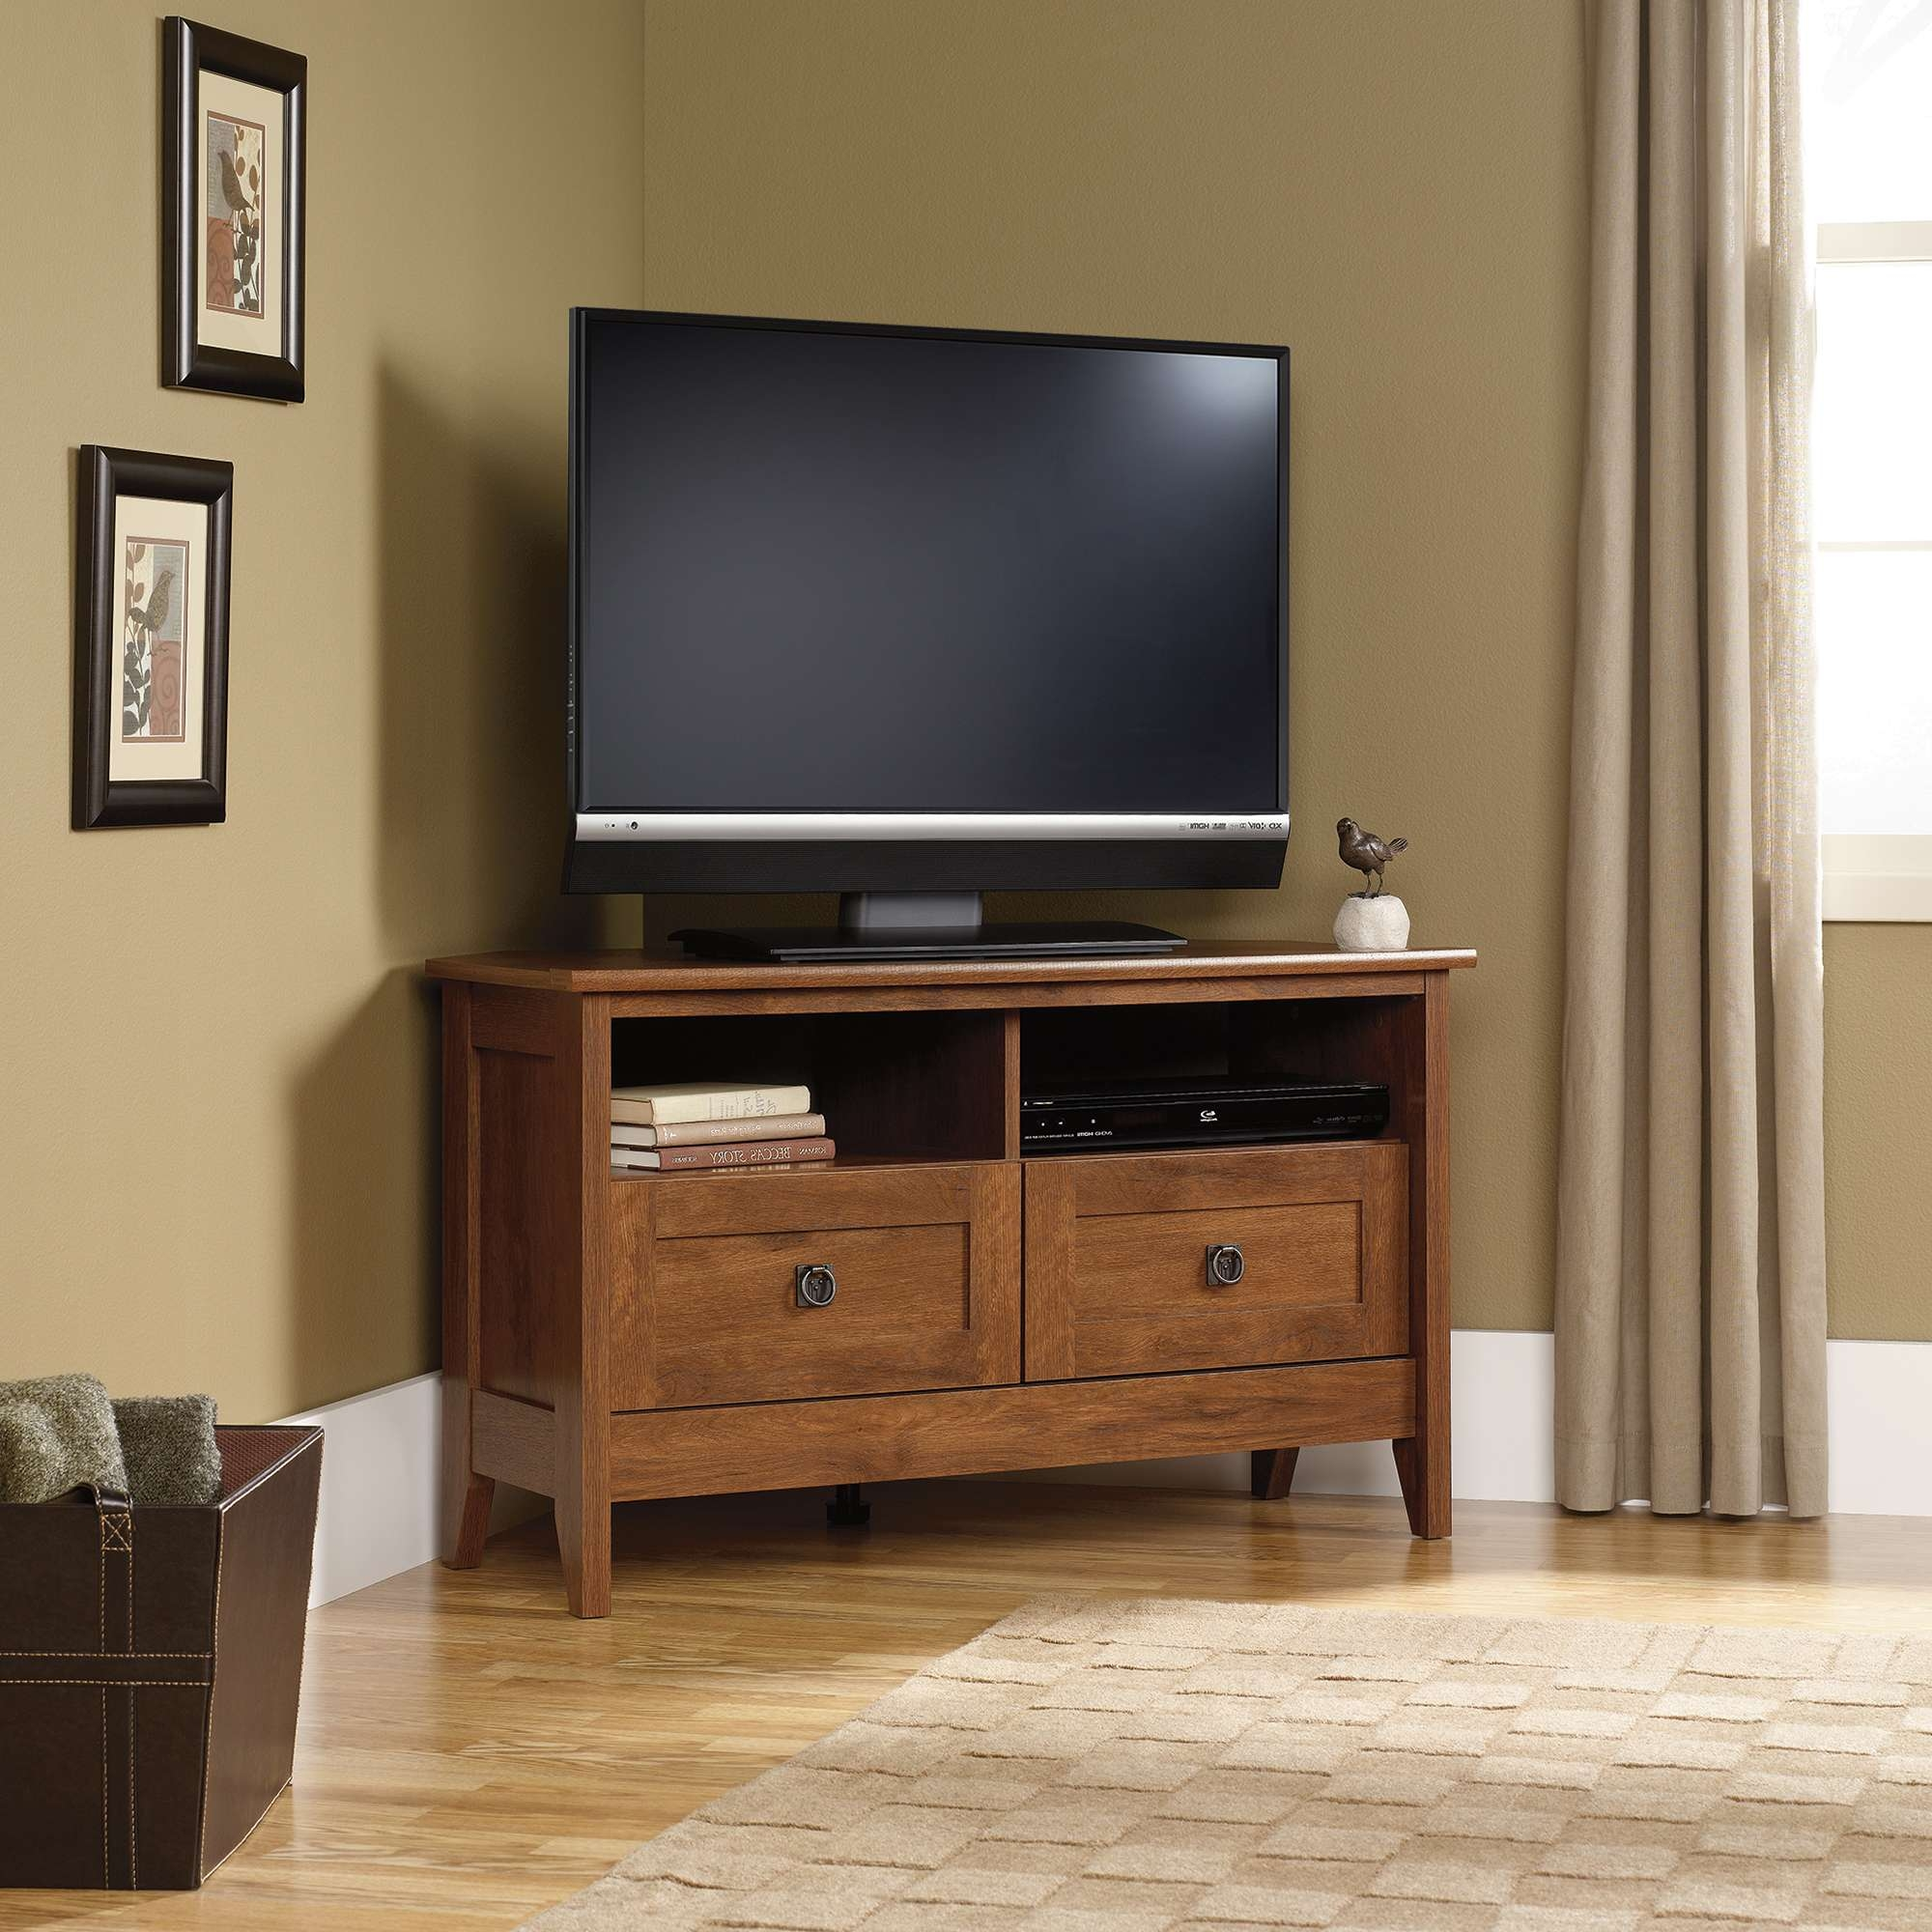 Sauder Select | Corner Tv Stand | 410627 | Sauder Within Oak Corner Tv Stands For Flat Screens (View 8 of 15)